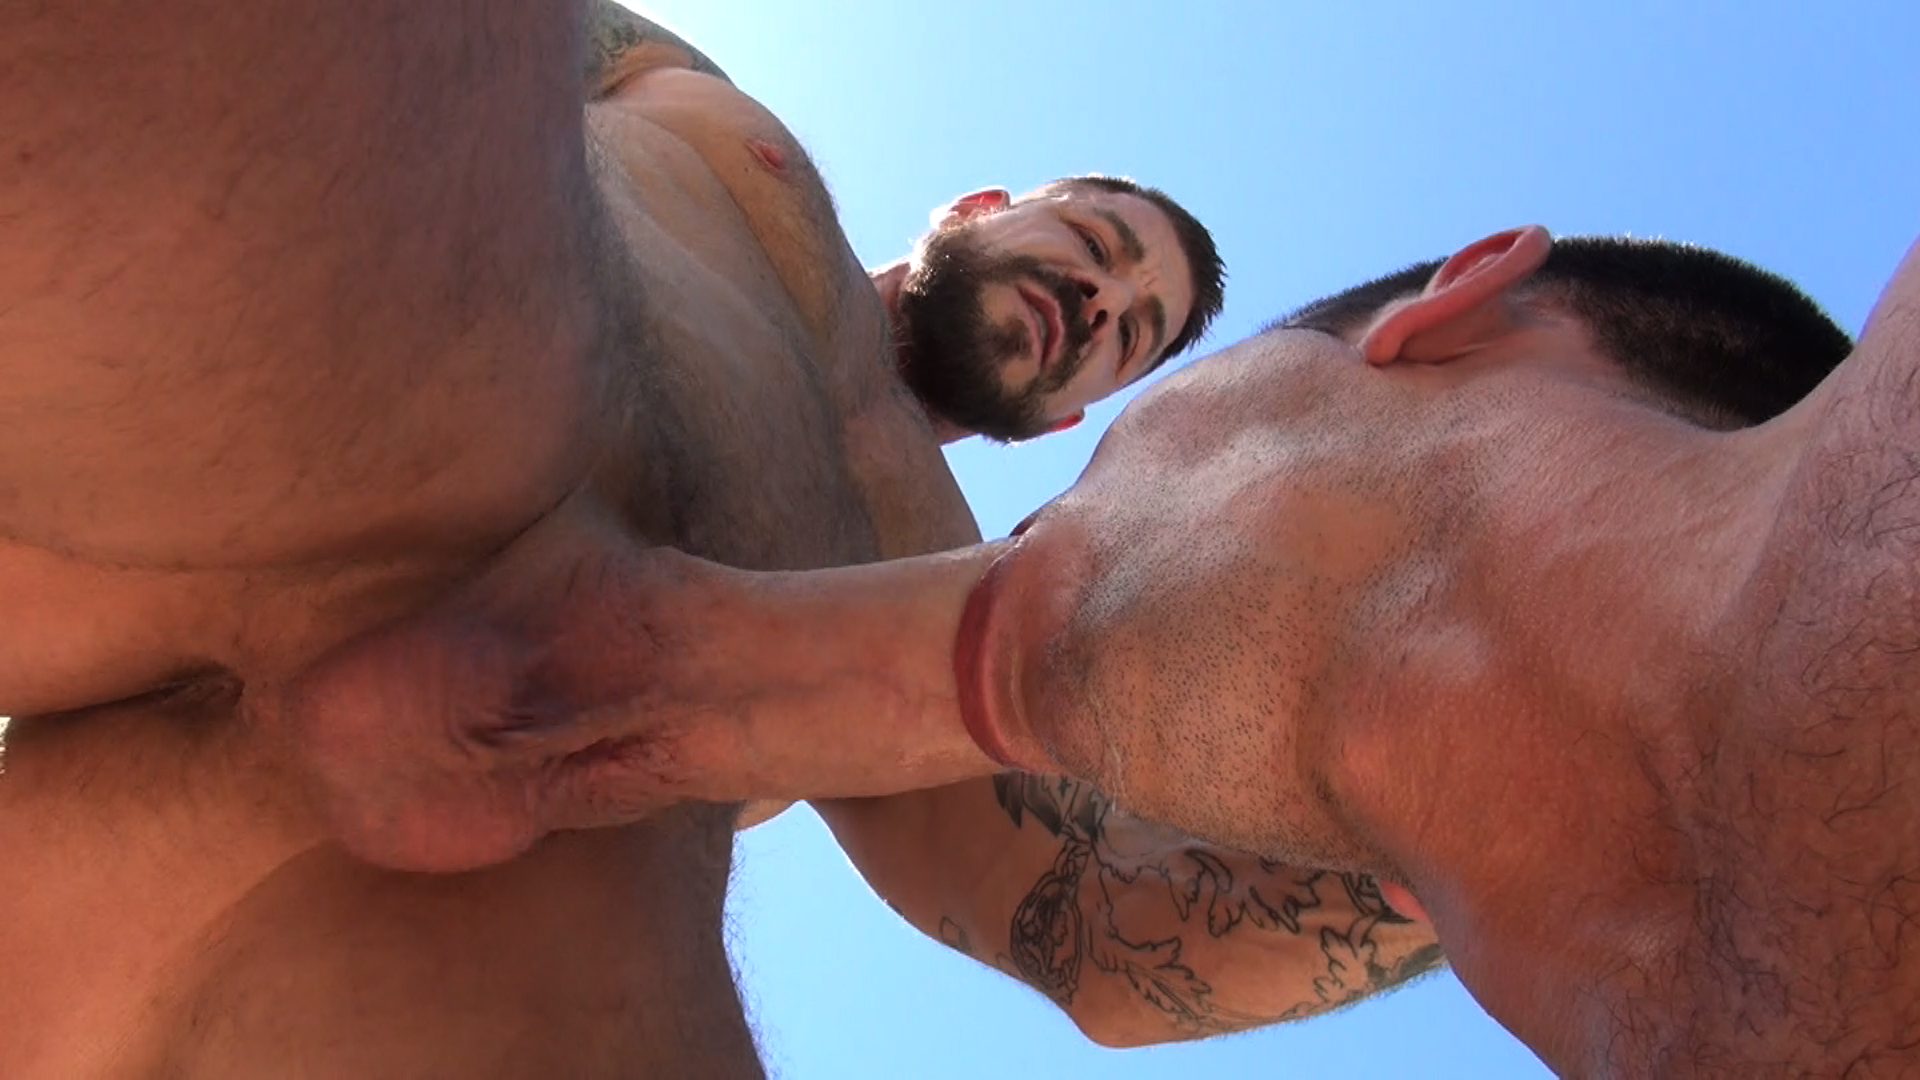 strings attach jerking off jizz lesson want man